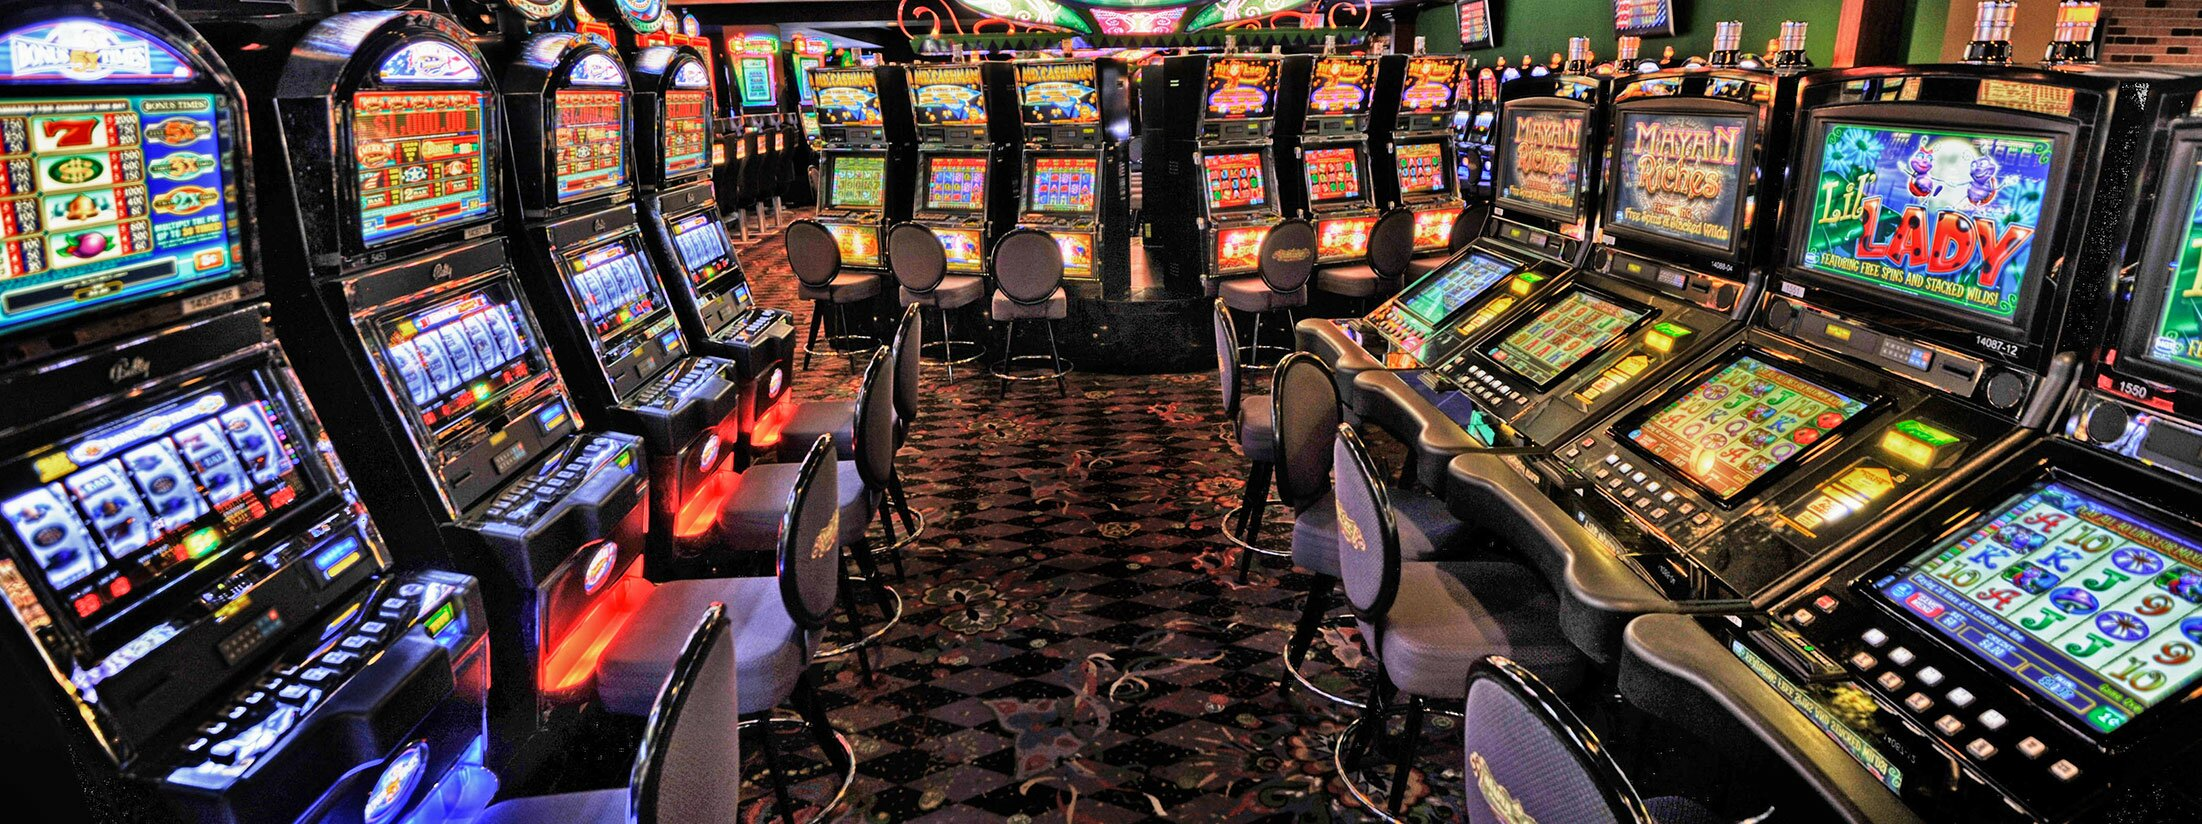 Casino on slot machines